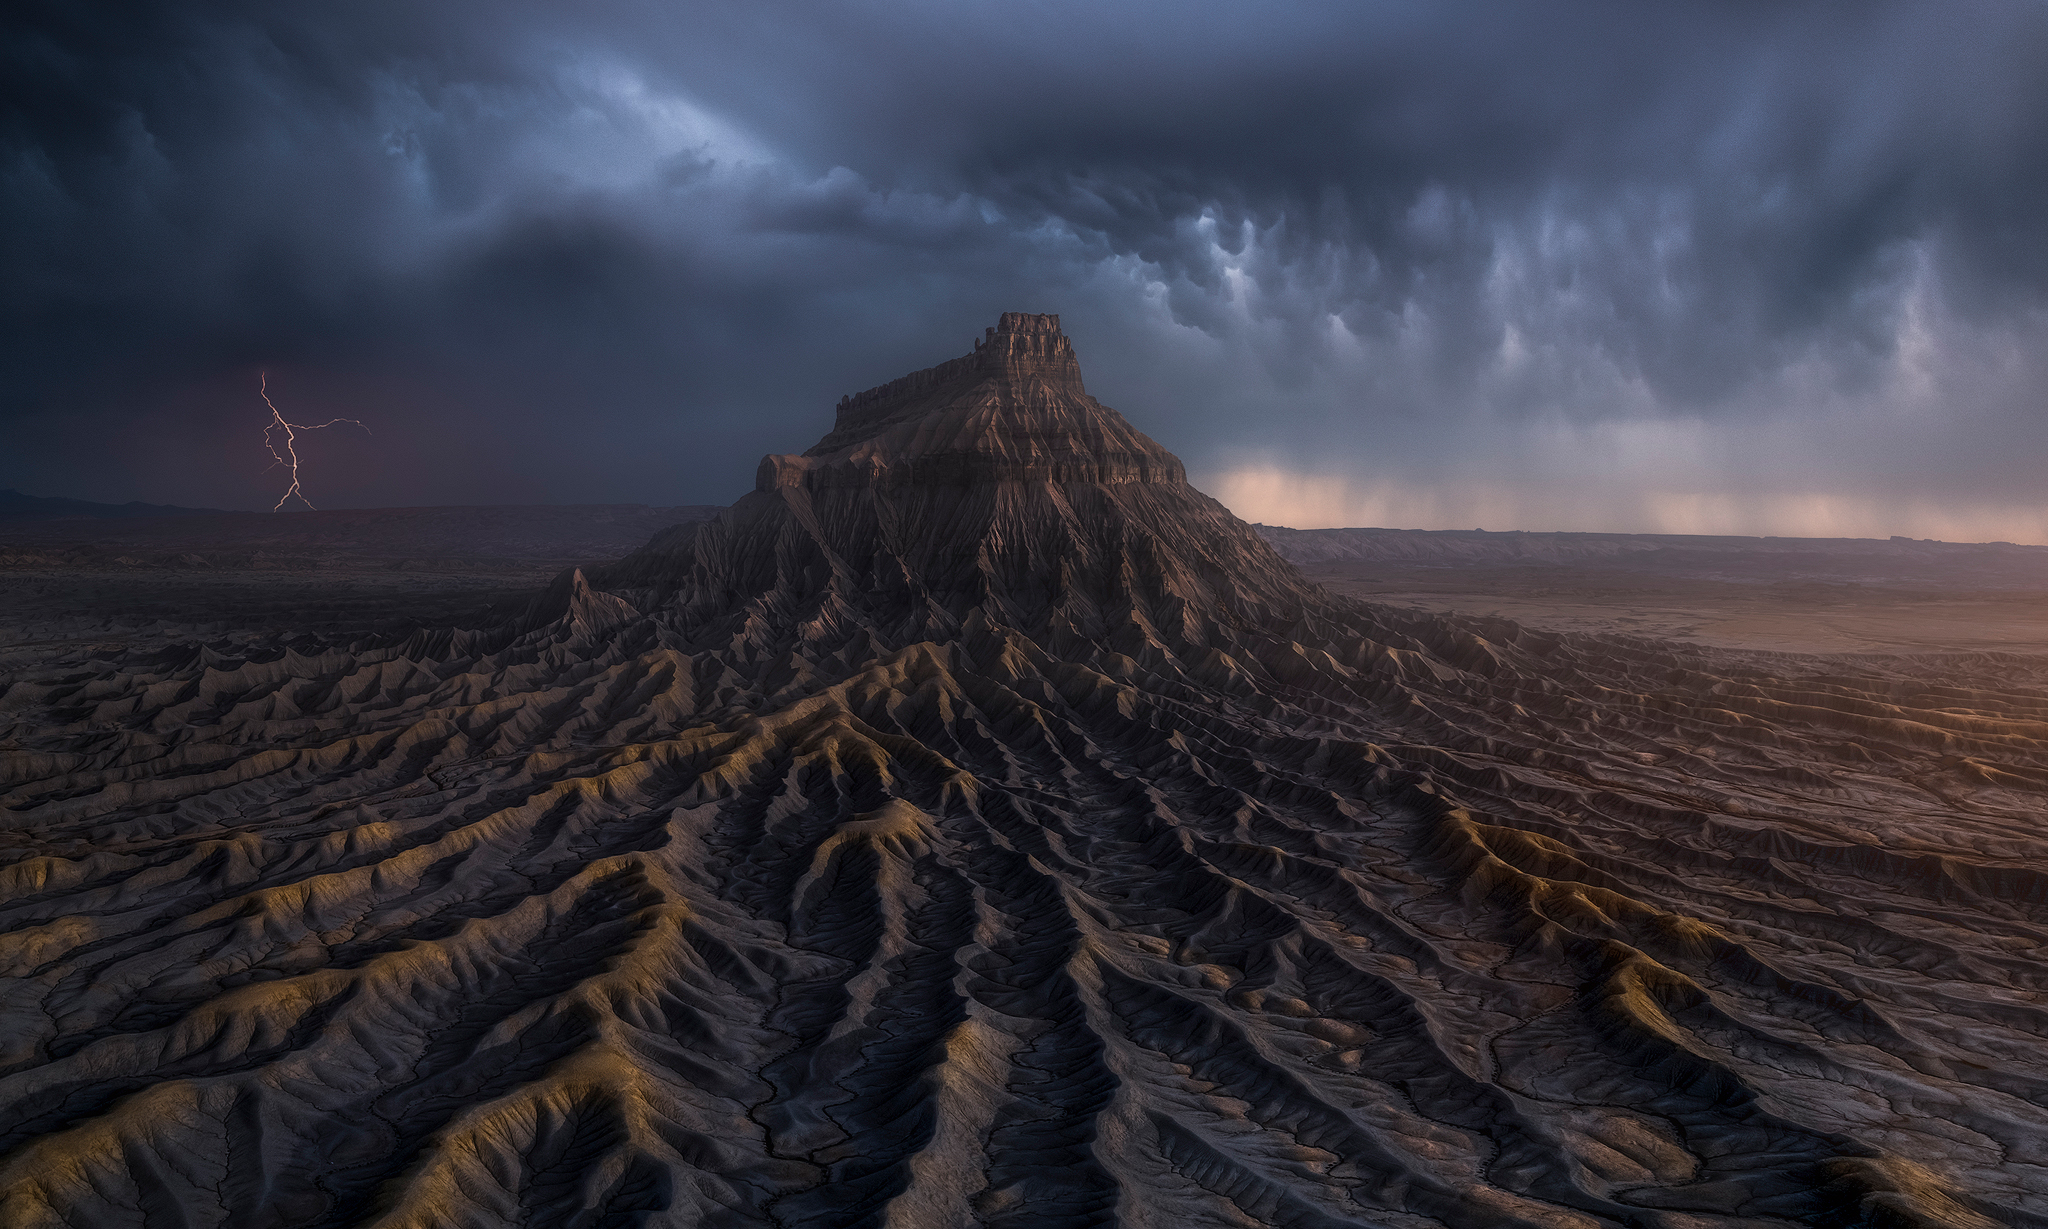 Fortress of Erosion (2018)